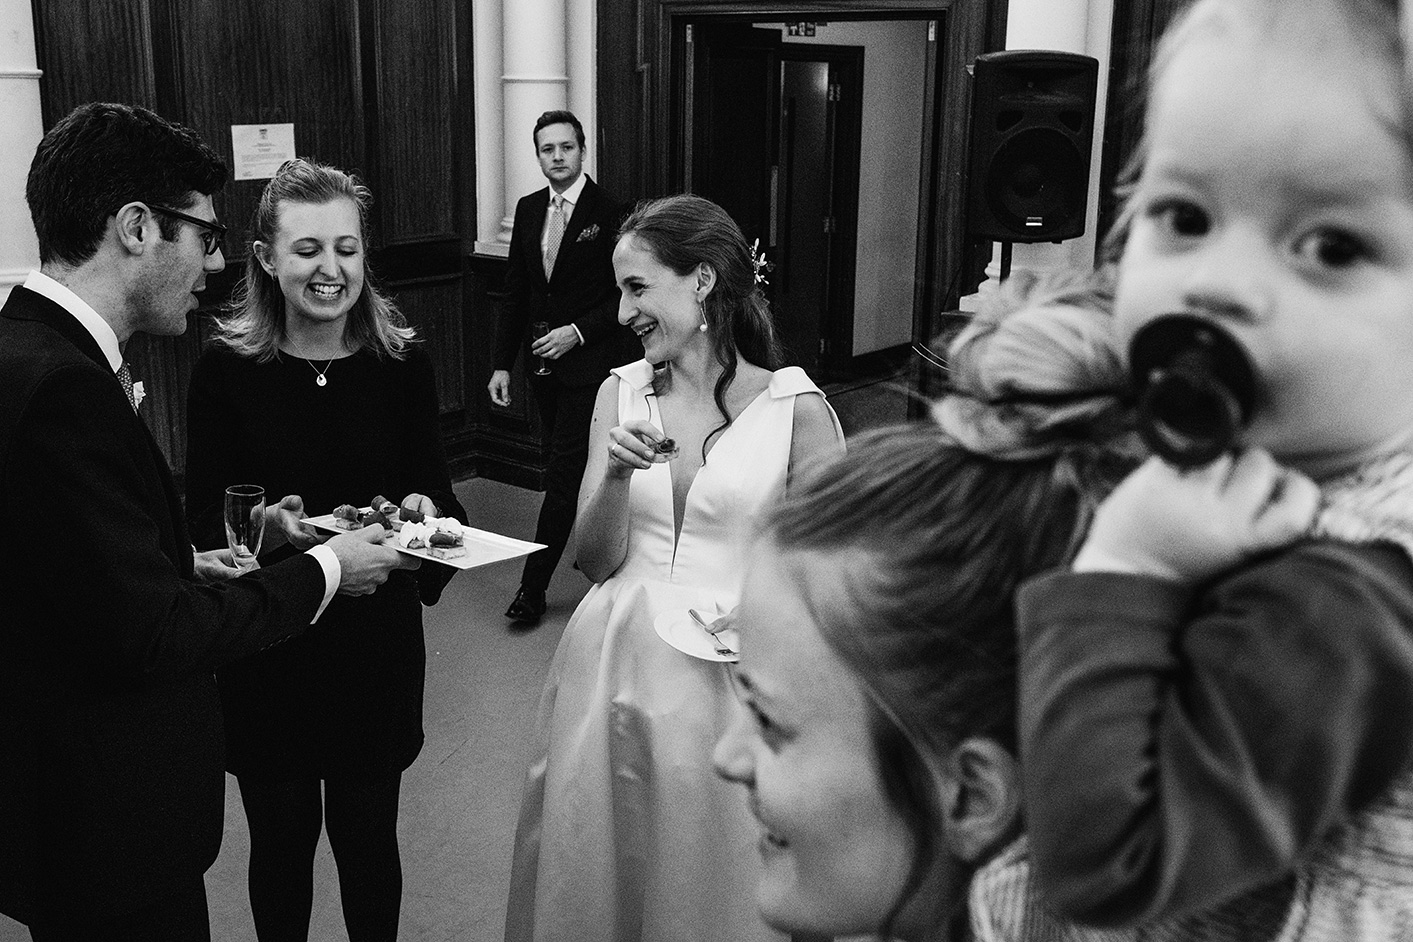 The Old Finsbury Town Hall reception with canapes in black and white